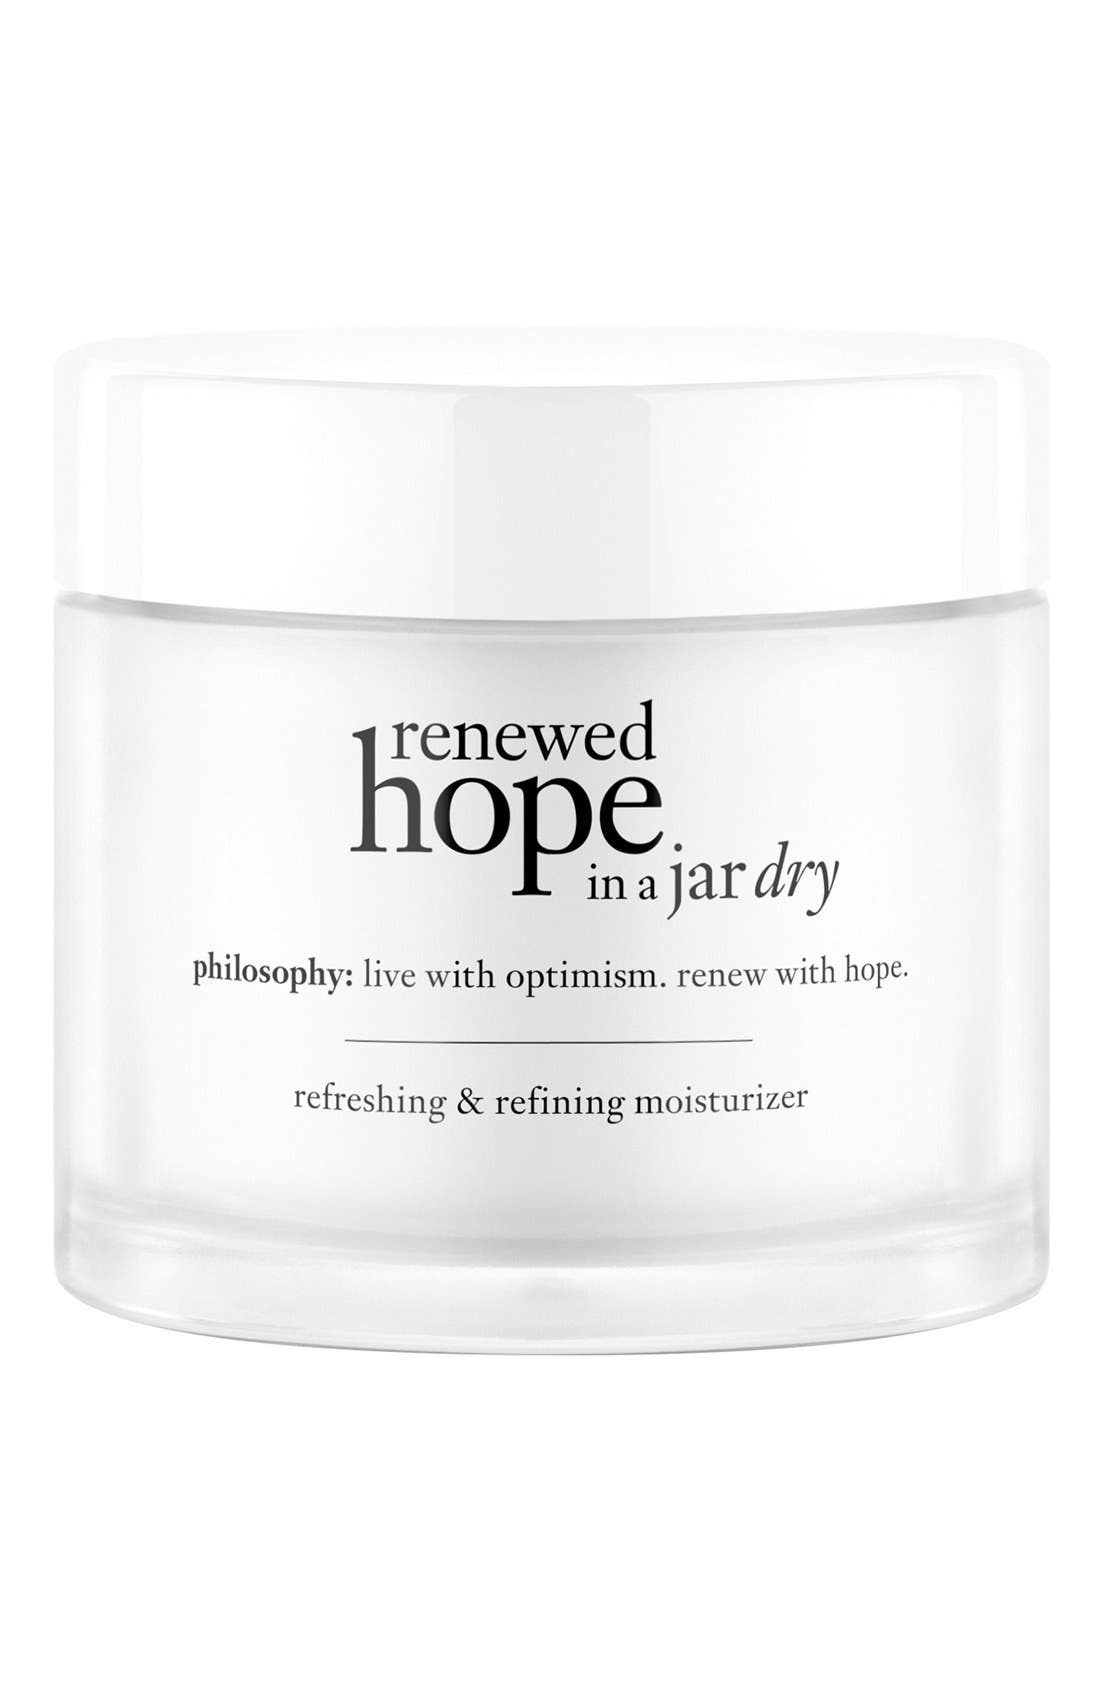 'renewed hope in a jar dry' refreshing & refining moisturizer,                             Main thumbnail 1, color,                             NO COLOR